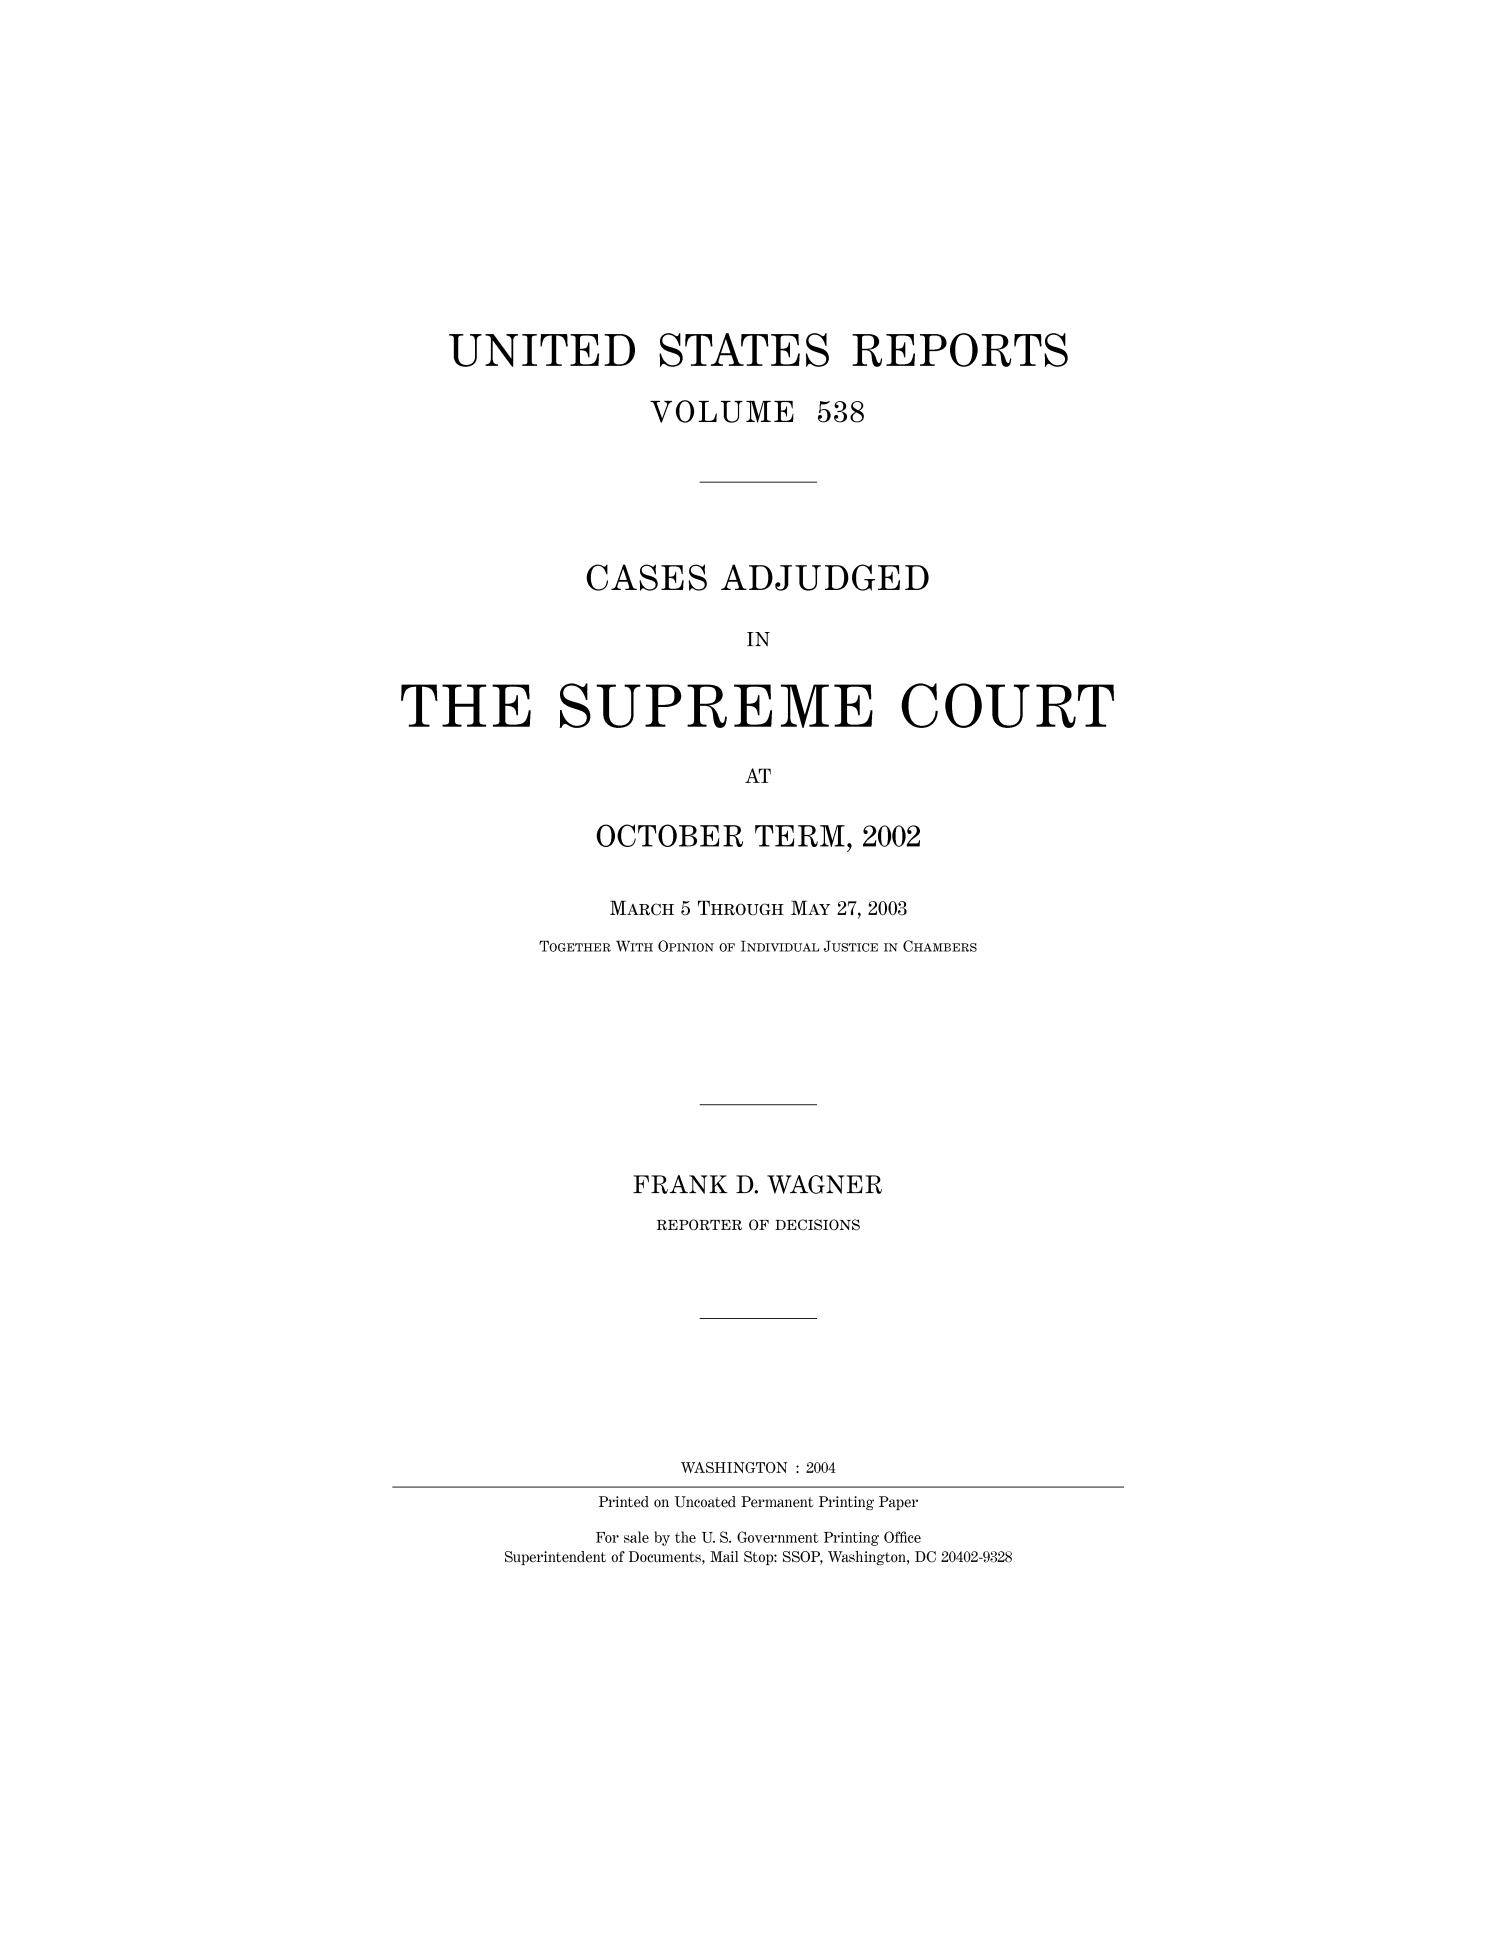 Cases Adjudged in The Supreme Court at October Term, 2002